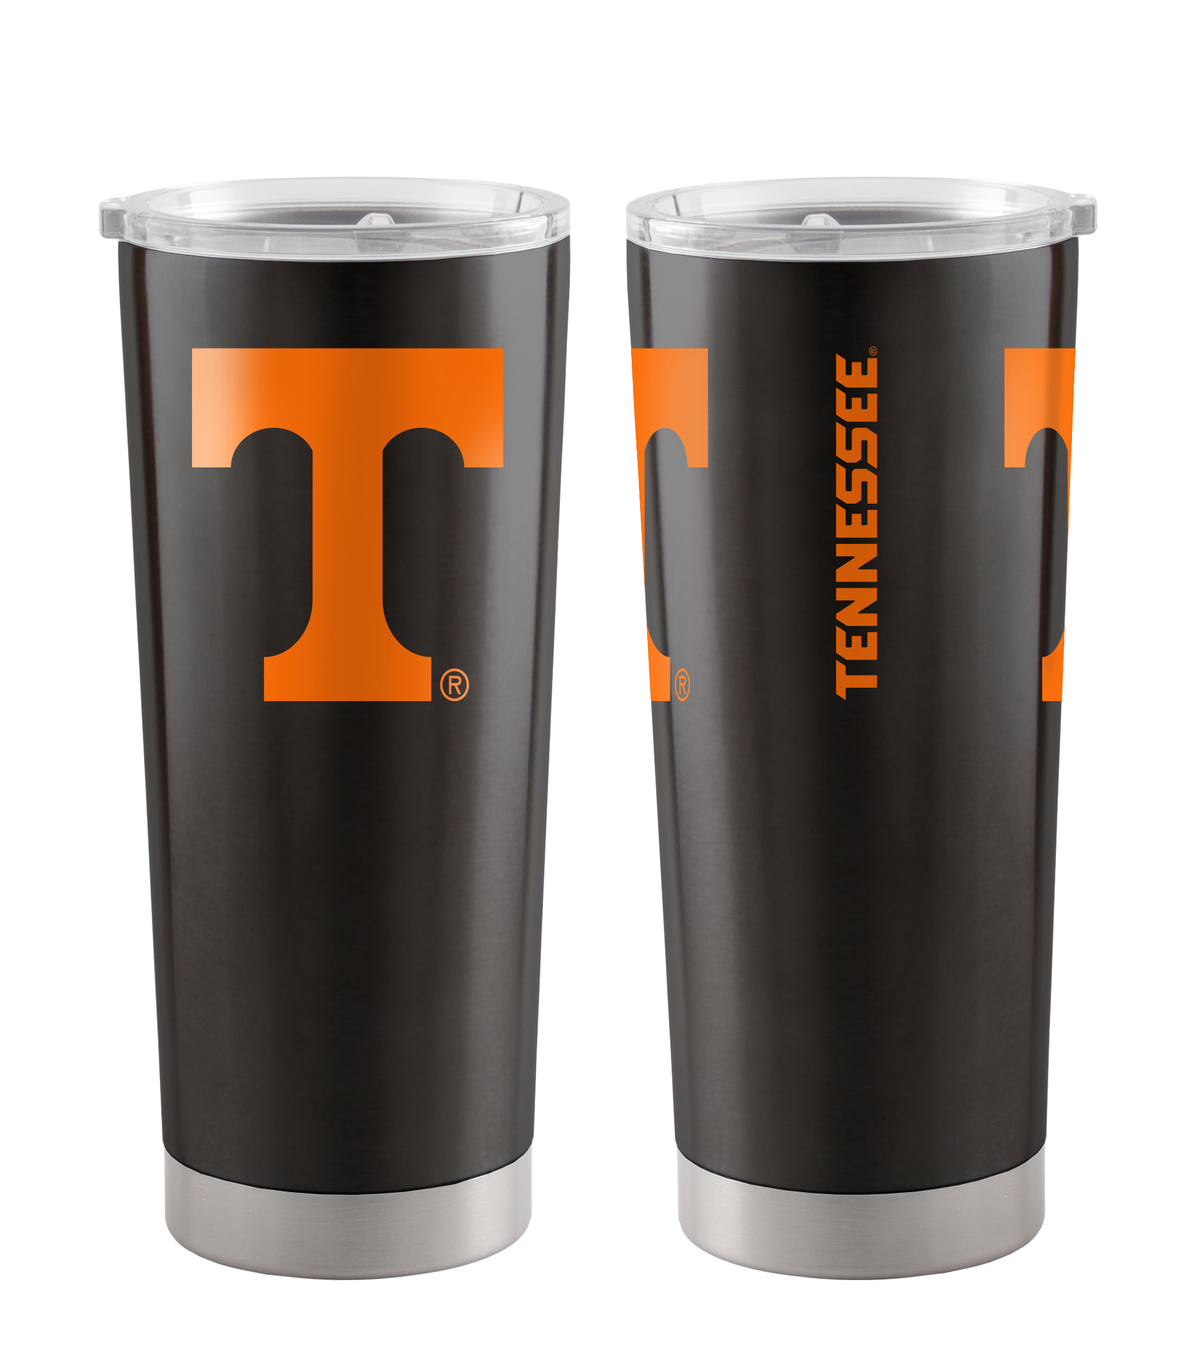 University of Tennessee 20 oz Insulated Stainless Steel Tumbler